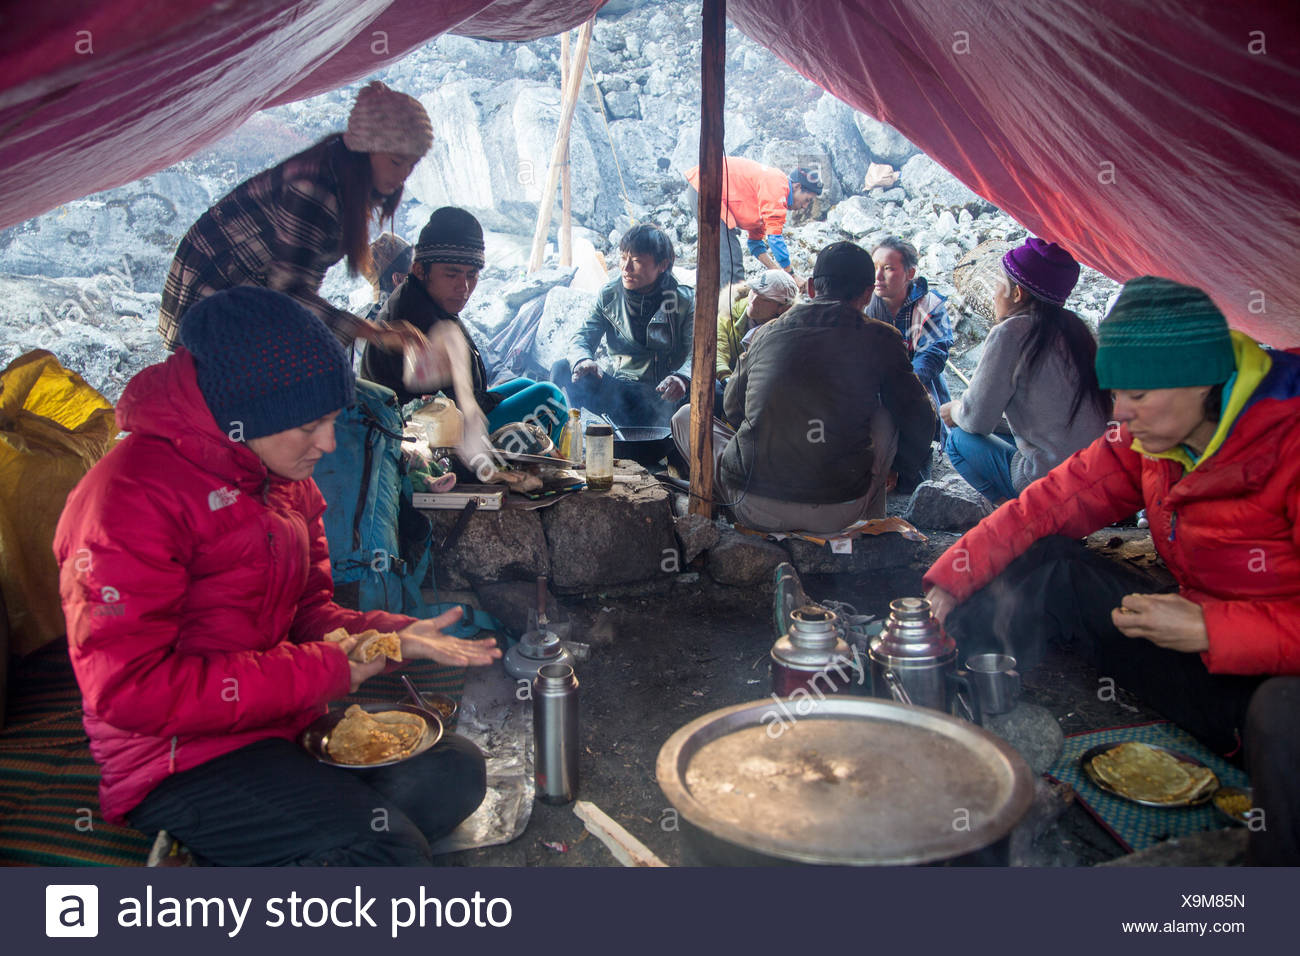 Porters and cooks eat breakfast before beginning the trek out from the Hkakabo Razi expedition's base camp. - Stock Image